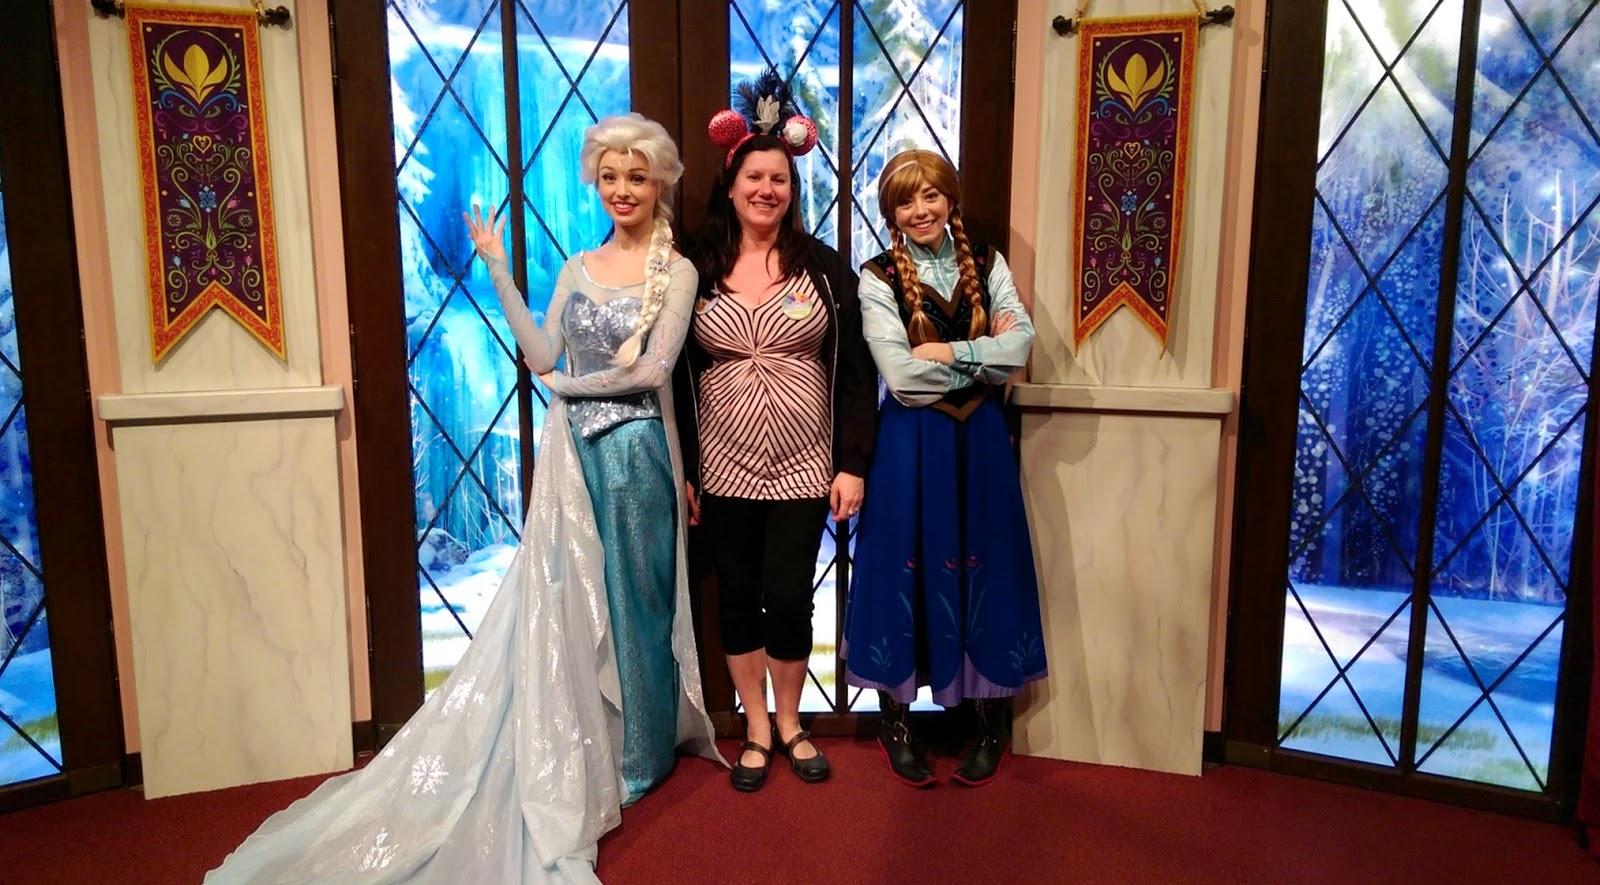 Franceth manor disneyland jewelscent leadership conference and not only did kathy get us onto the lilly belle presidential train car she also got us in to meet anna and elsa with no fast pass shes a wizard m4hsunfo